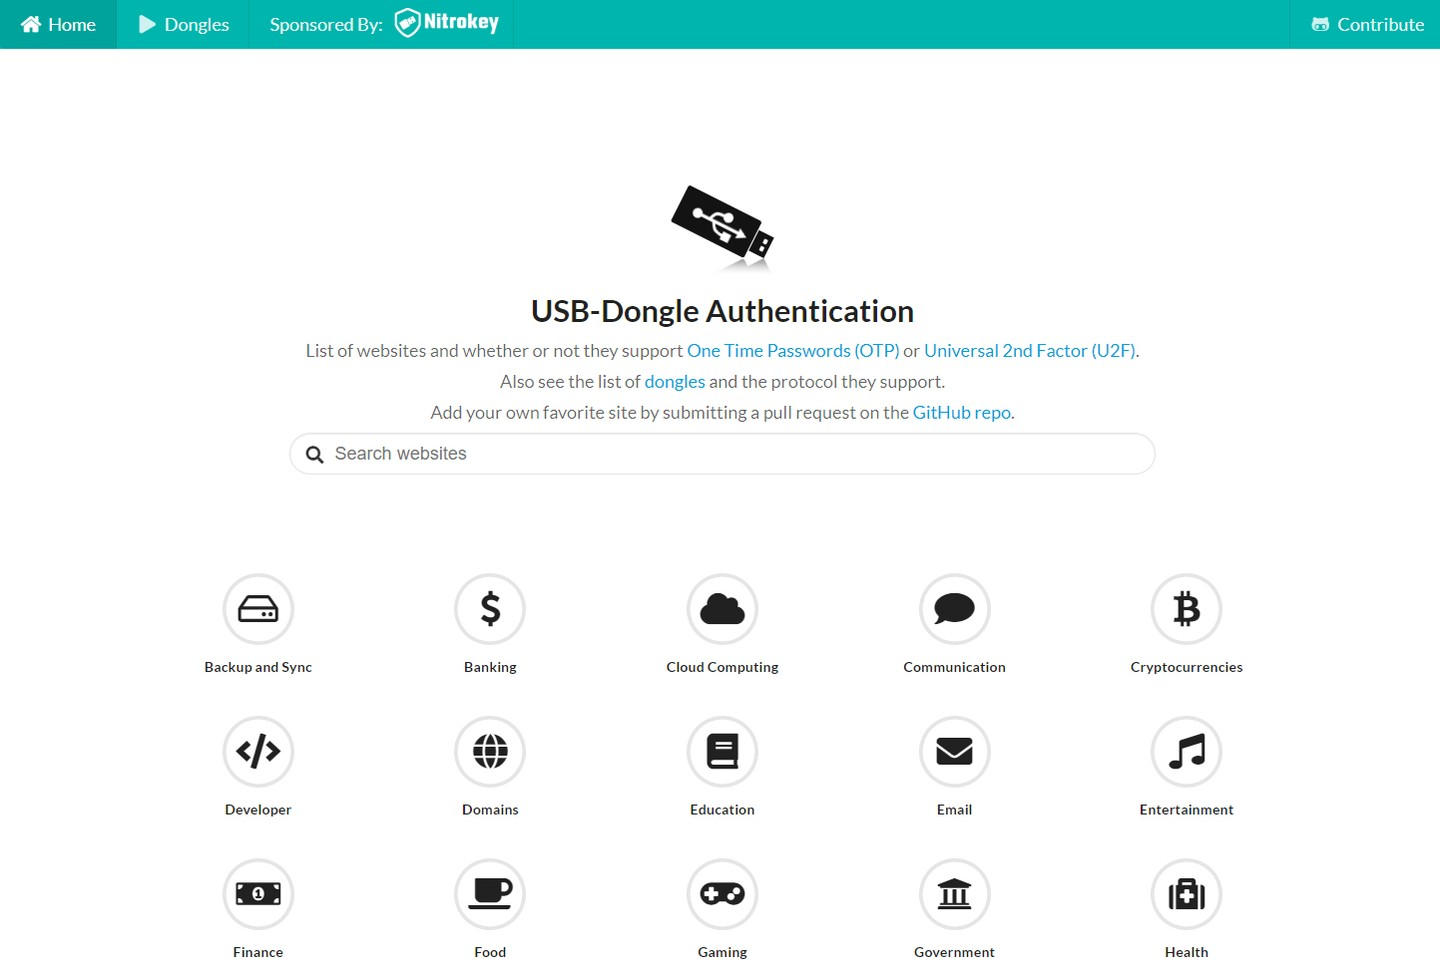 Dongle authentication